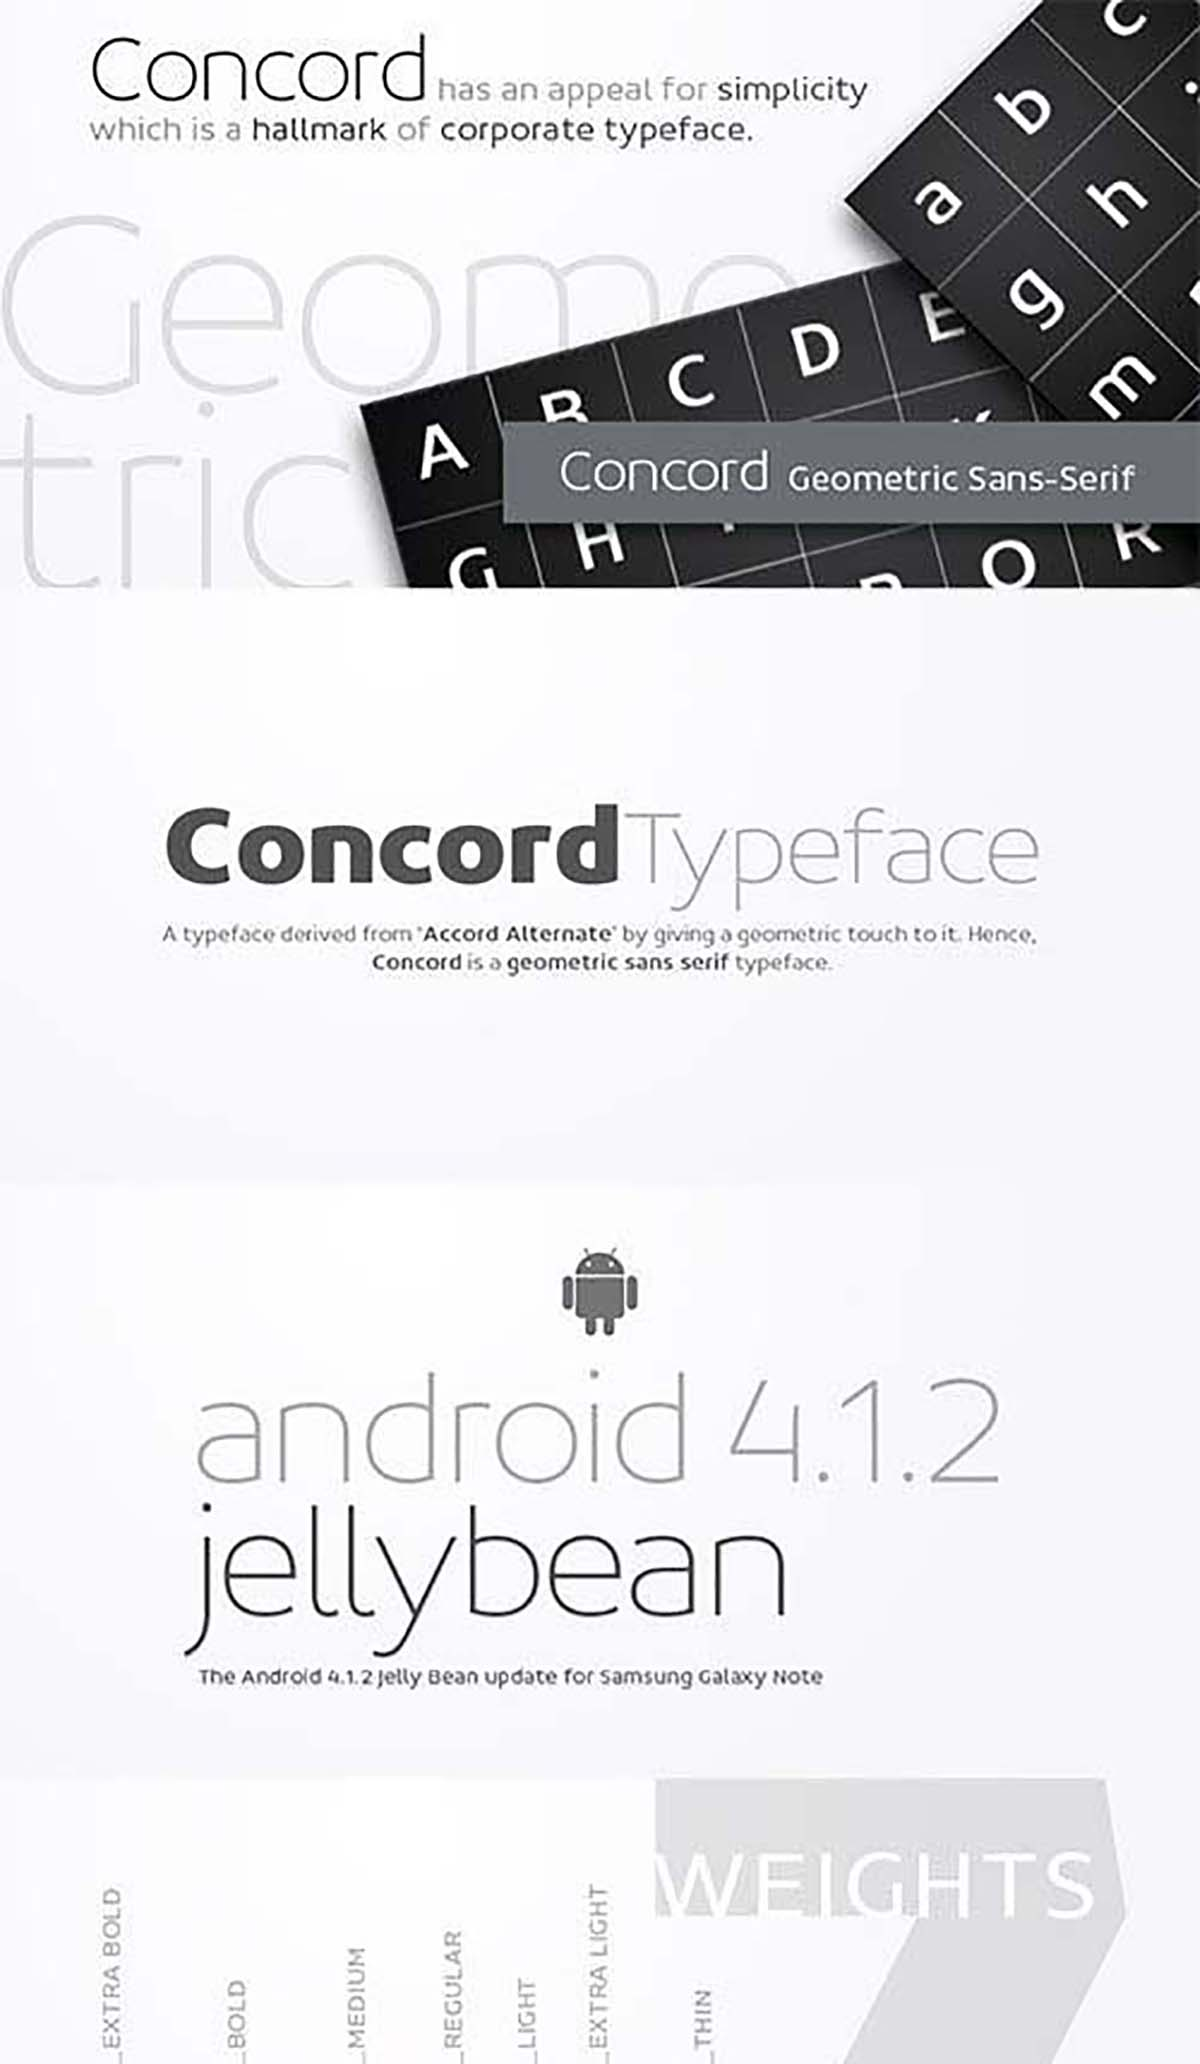 Concord corporate font set